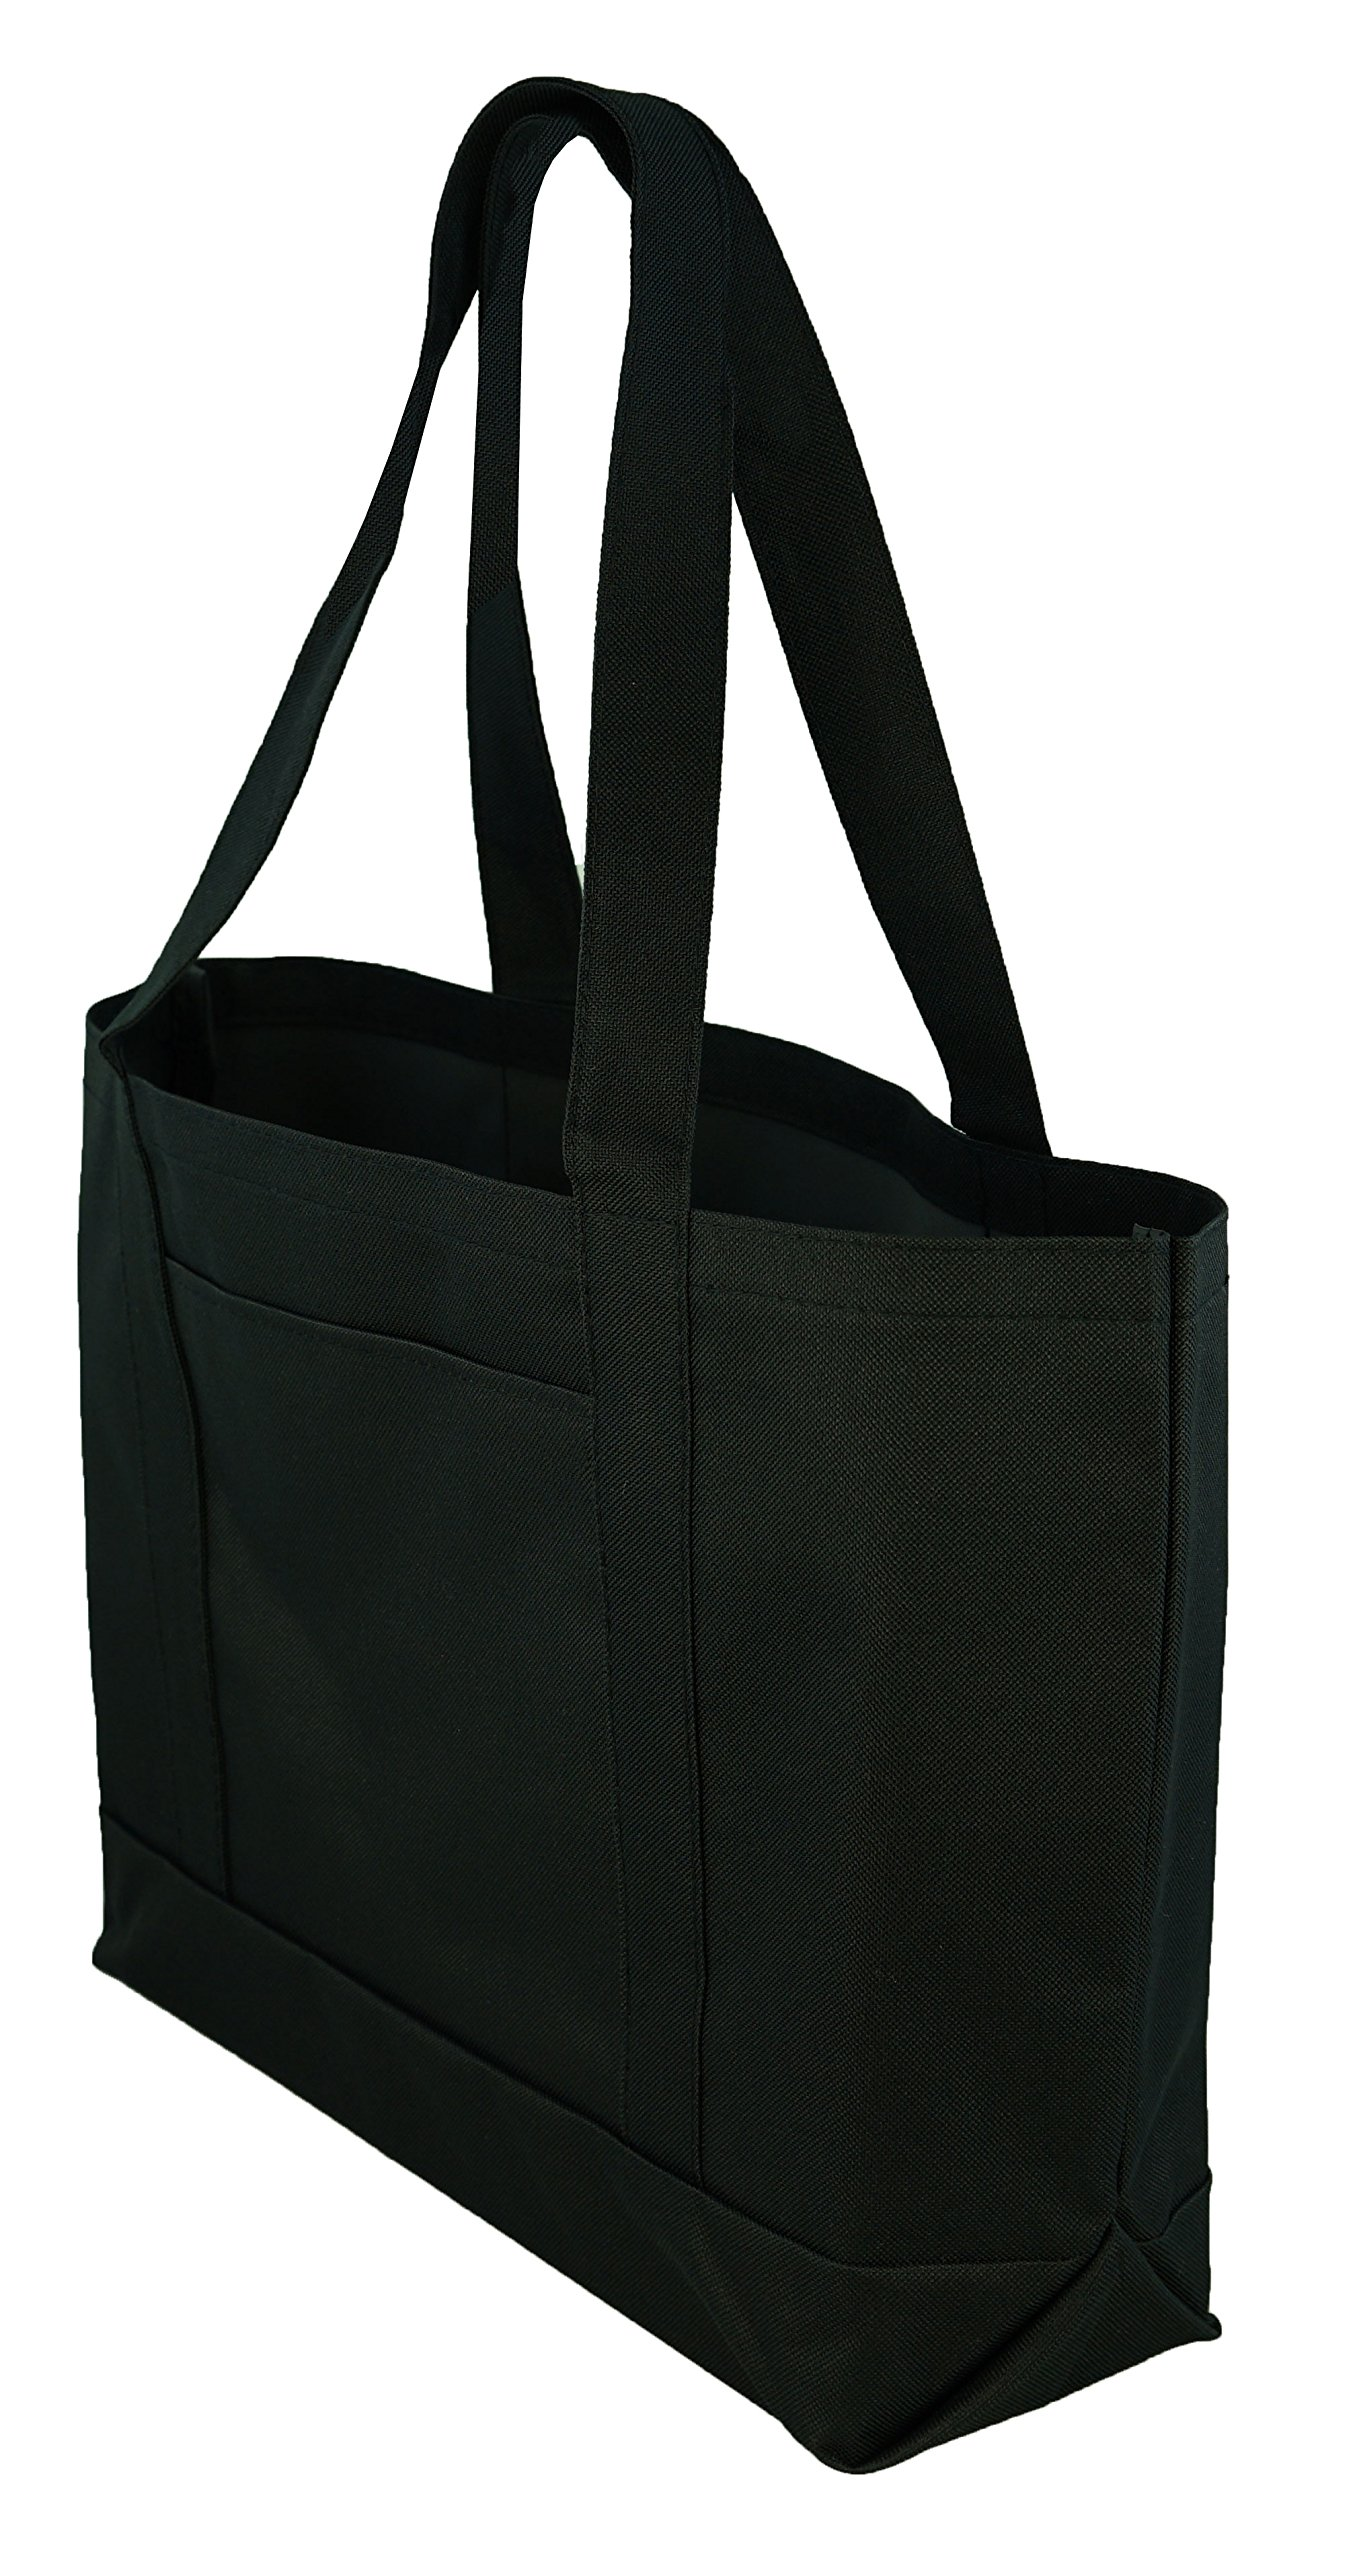 Daily Tote with Shoulder Length Handles and Outside Pocket by Ensign Peak (Image #2)